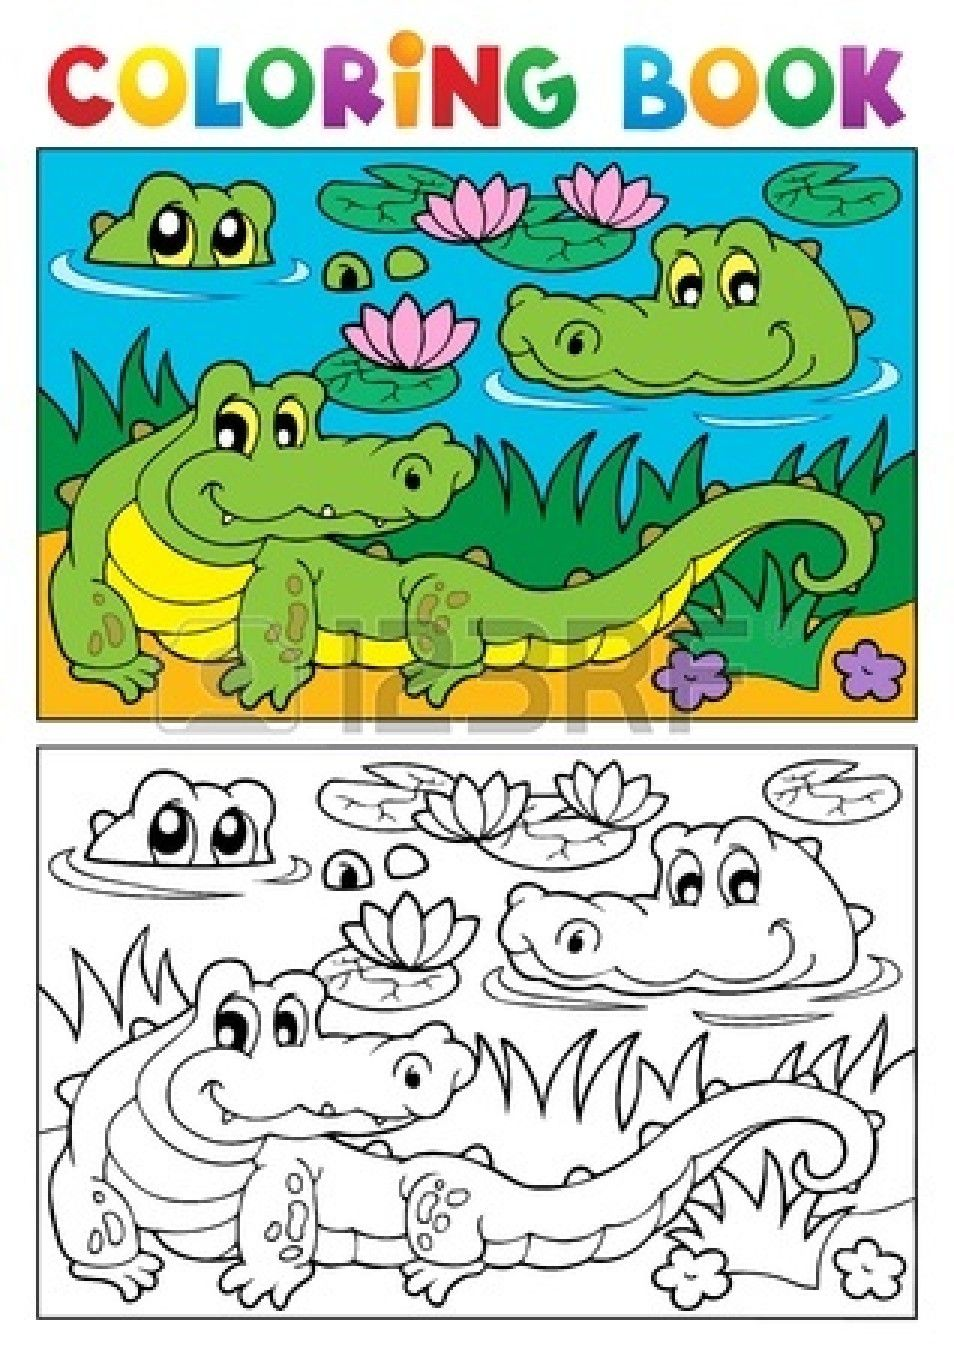 Coloring book crocodile image illustration | Mick | Pinterest ...